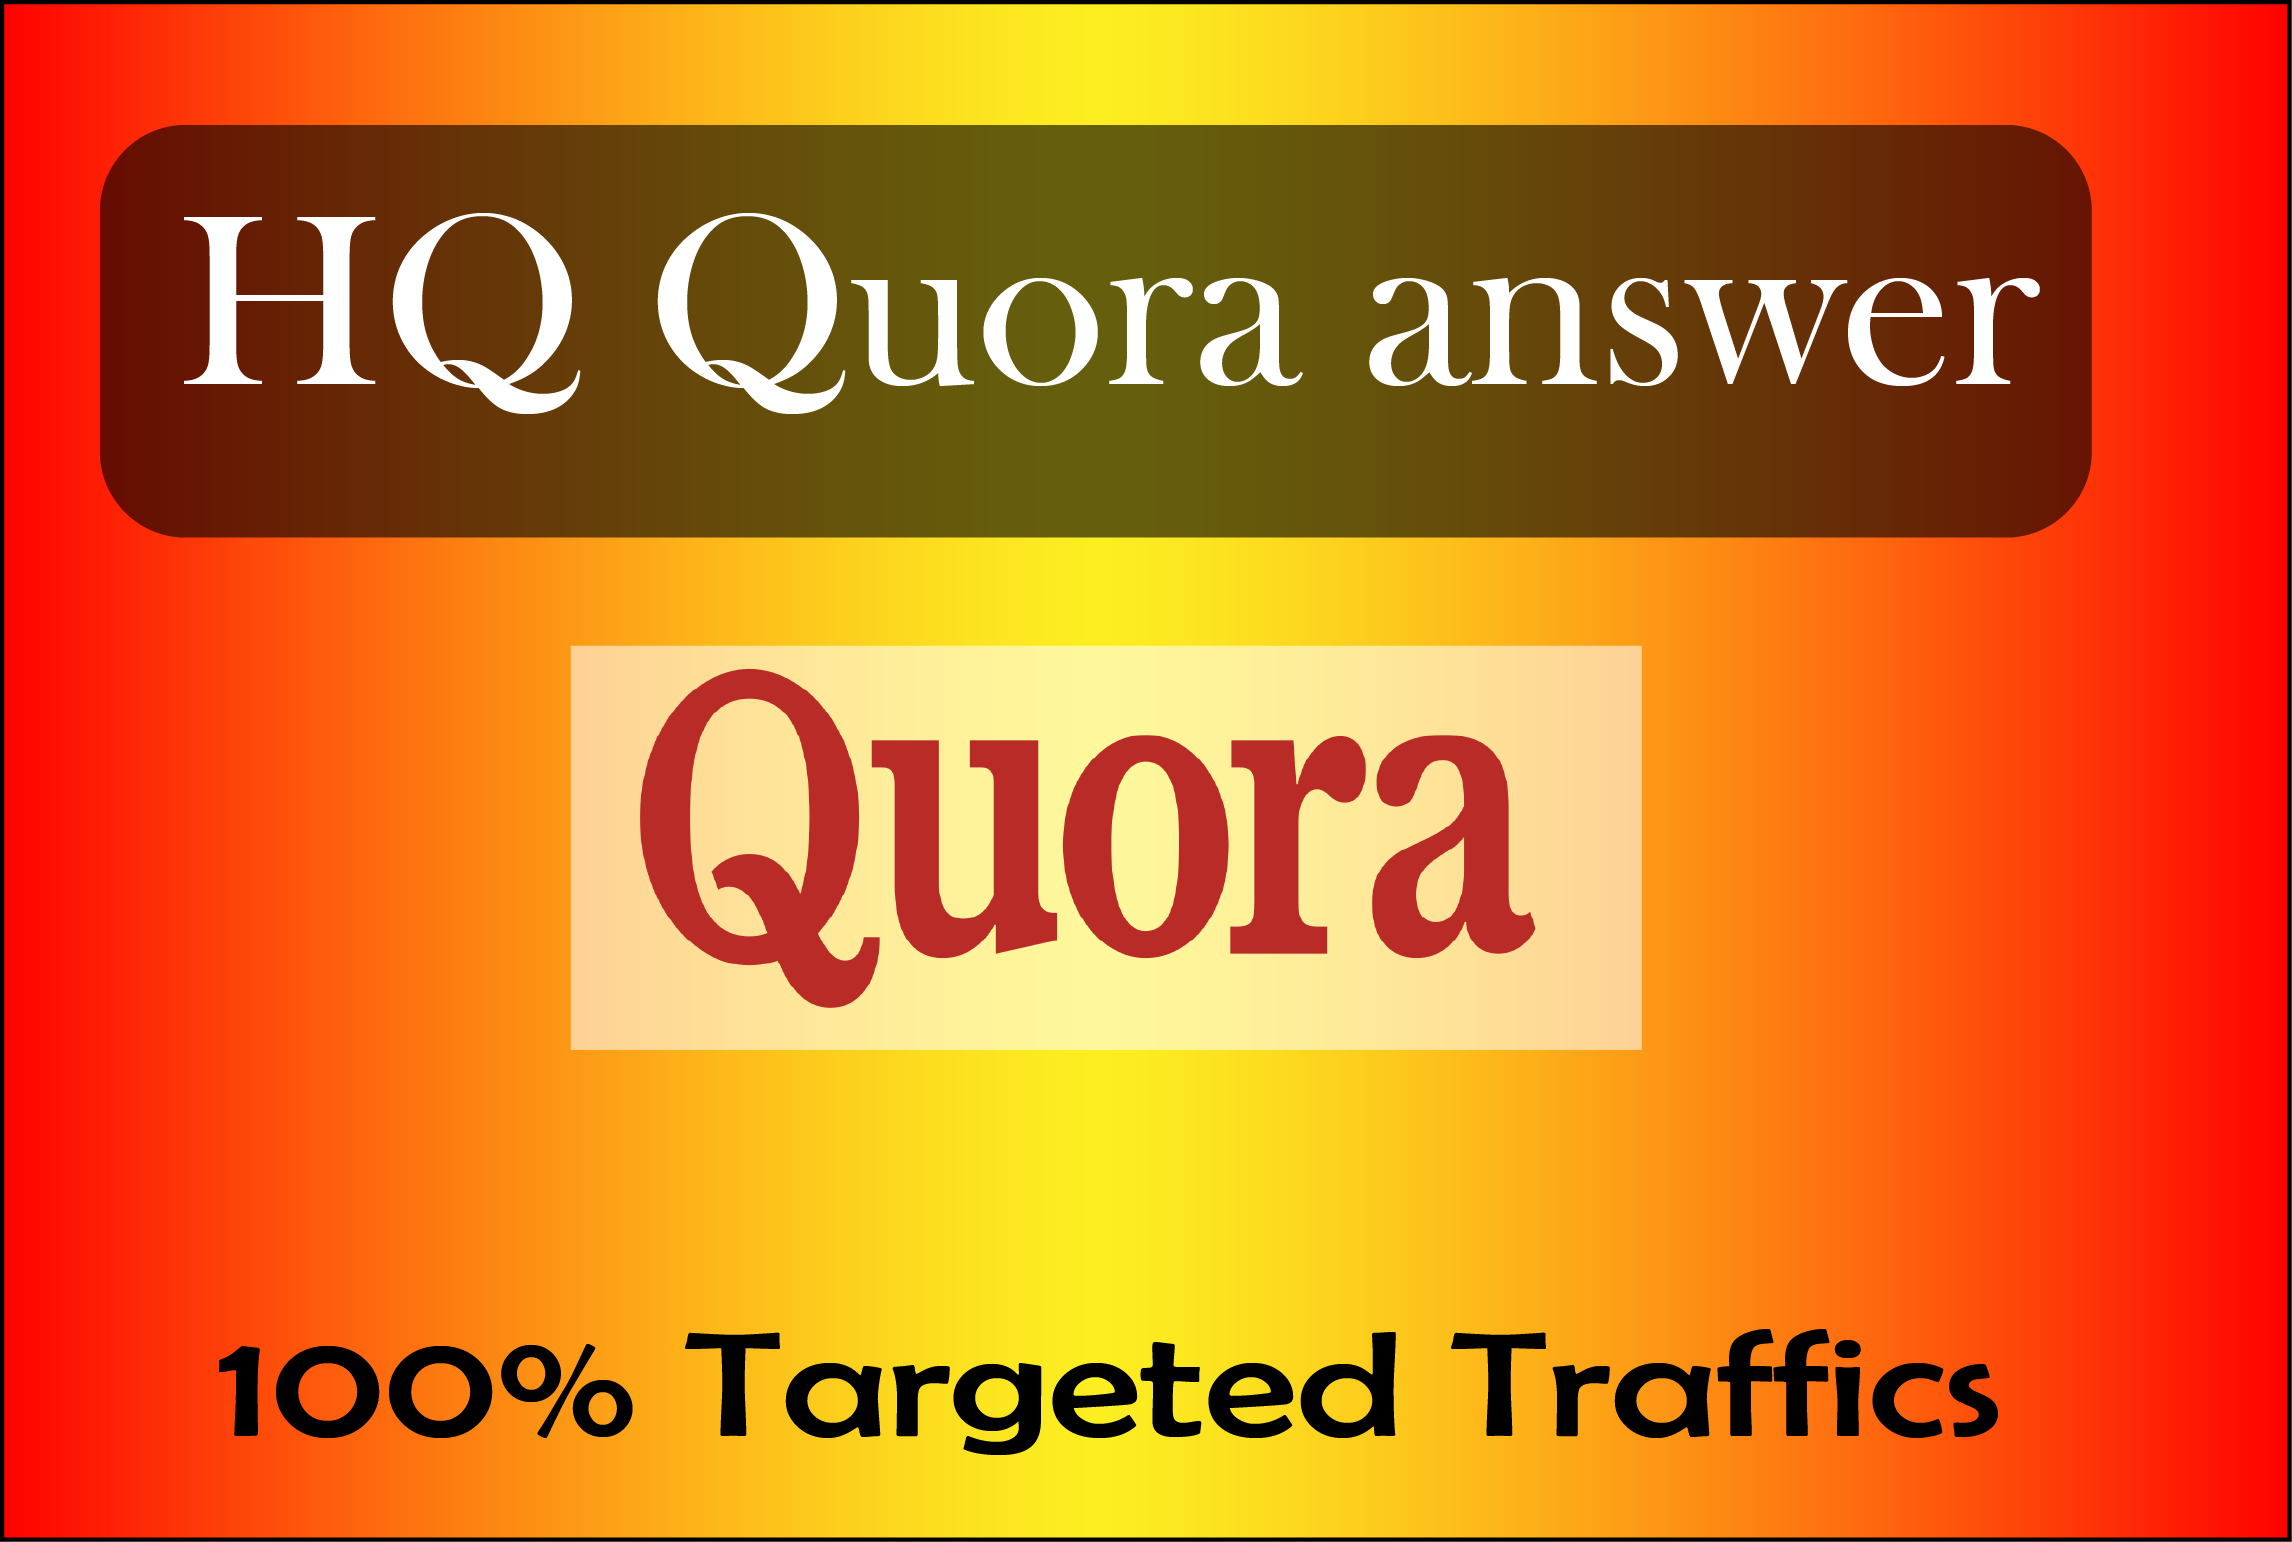 15 HQ Quora Answers For Guaranteed Traffic